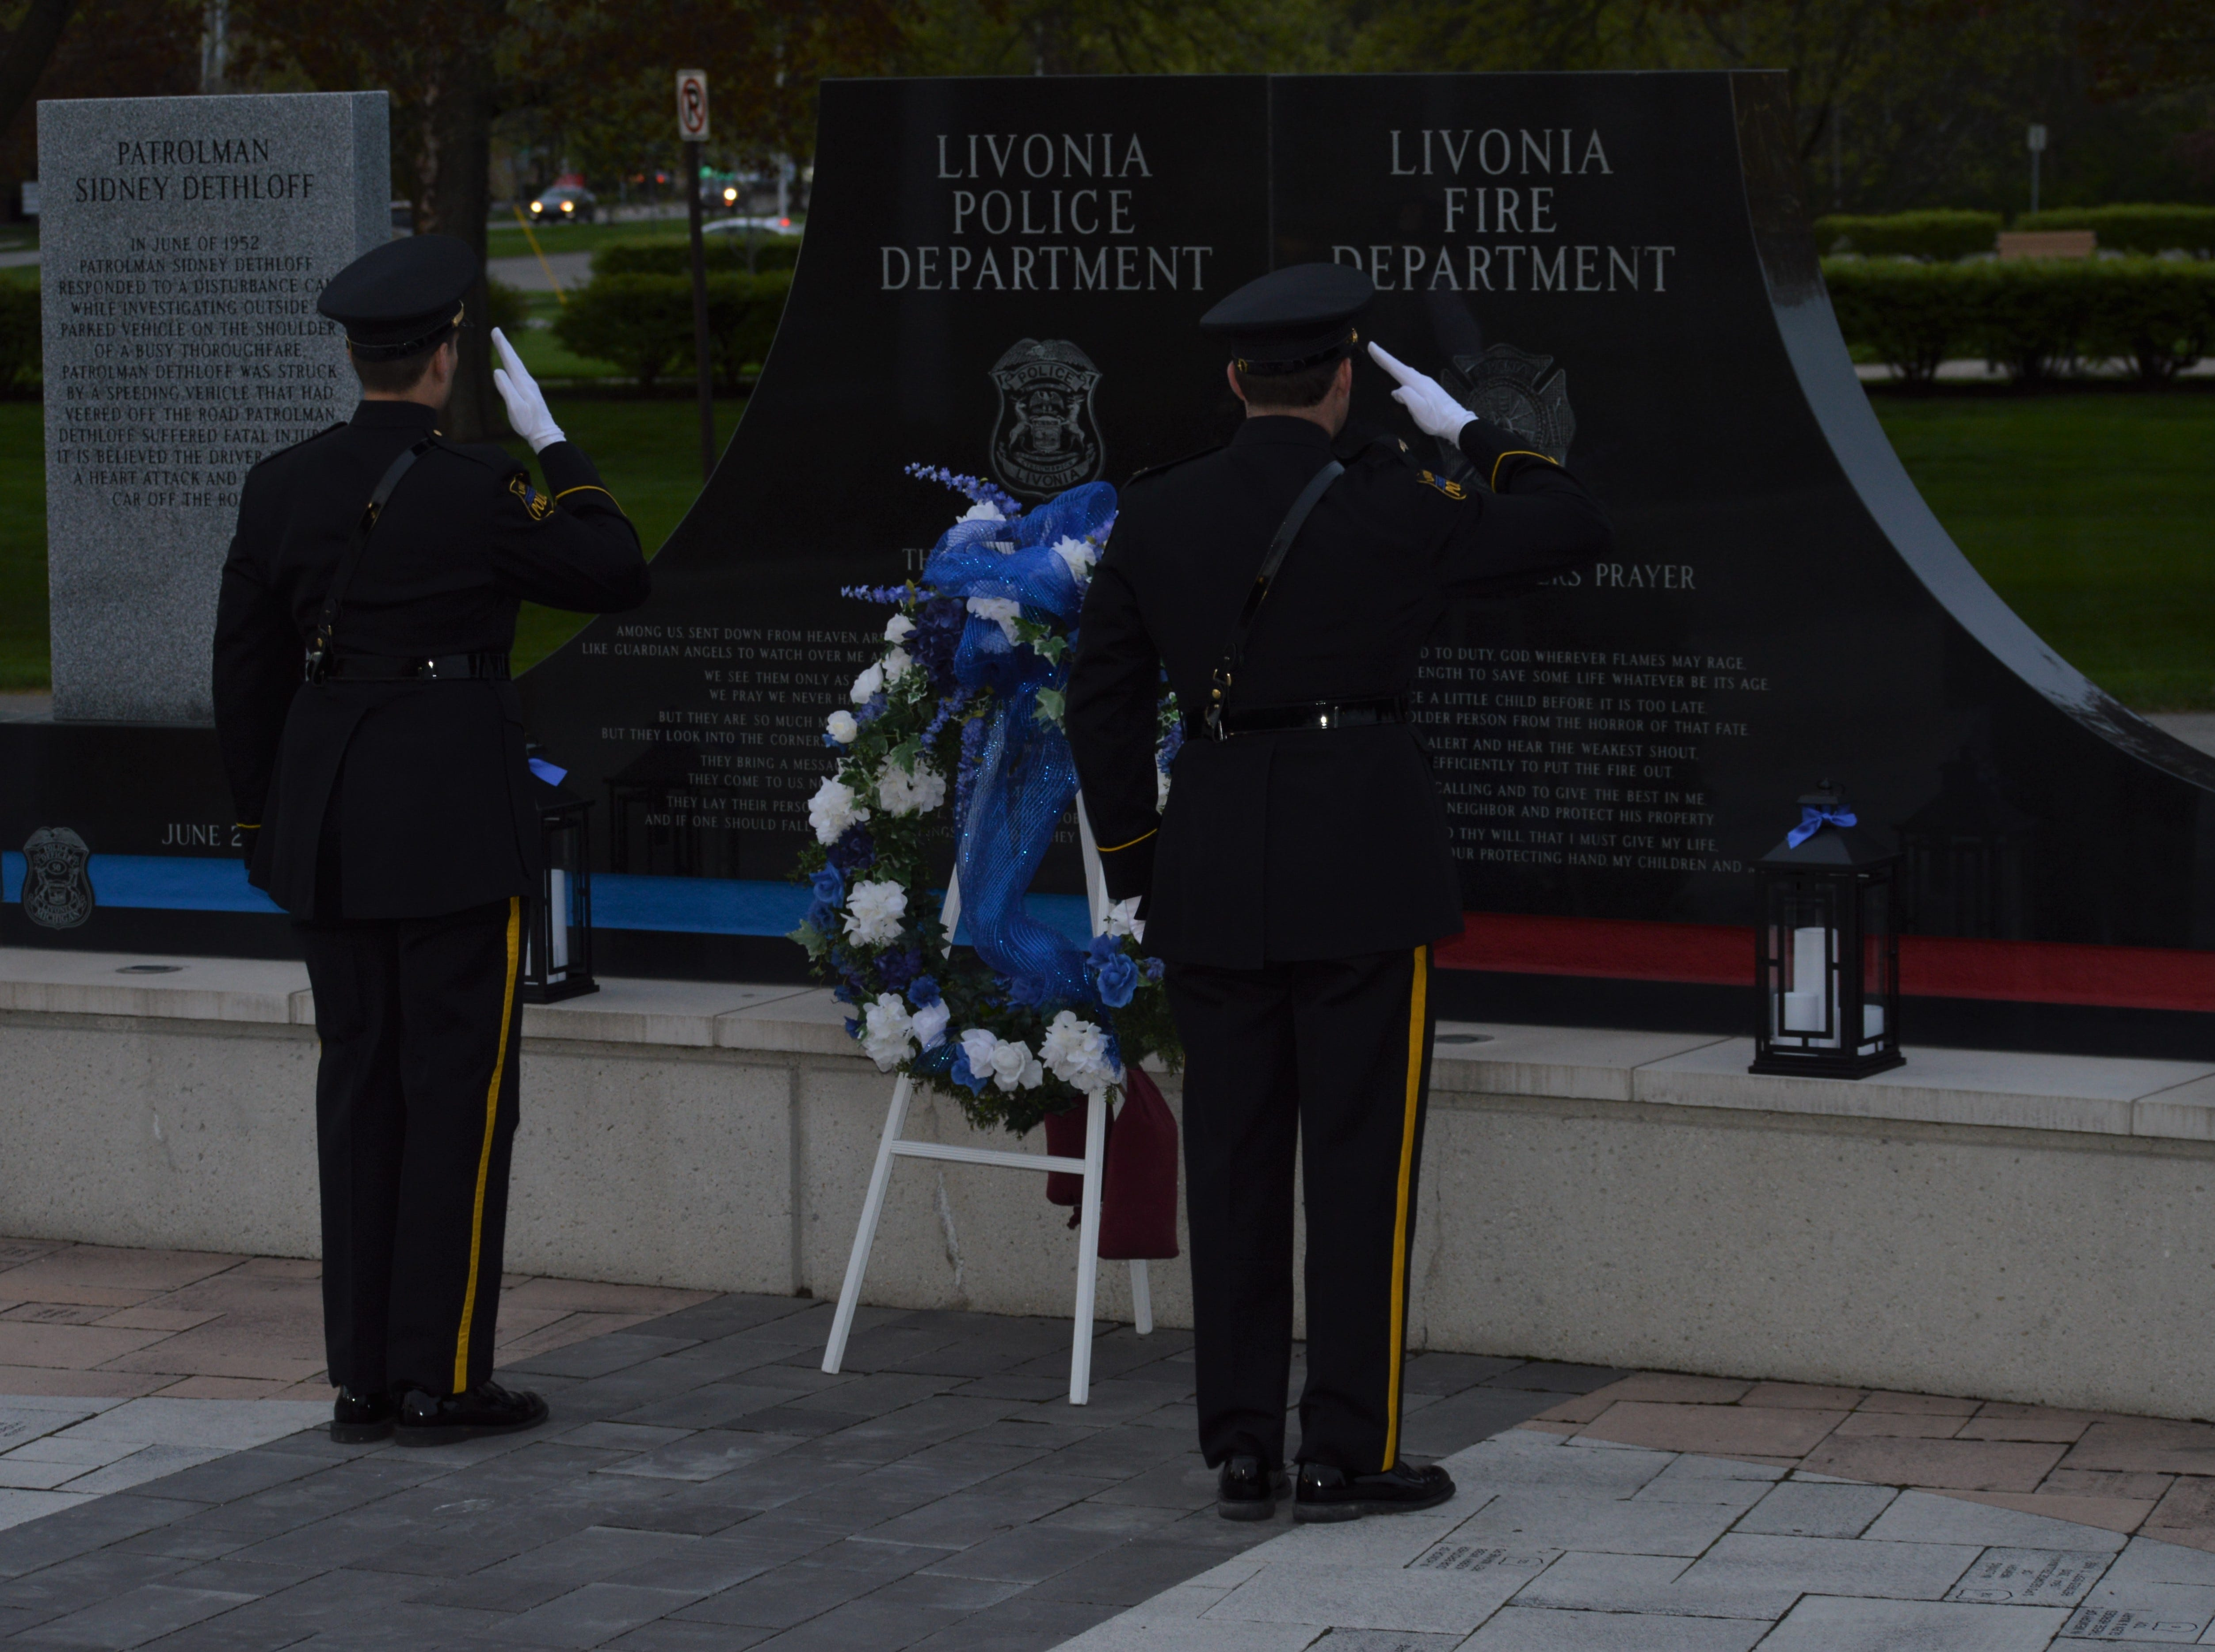 A wreath was presented to honor lost police officers during the fifth annual Livonia Police Memorial Ceremony at Larry Nehasil Park on May 7, 2019.